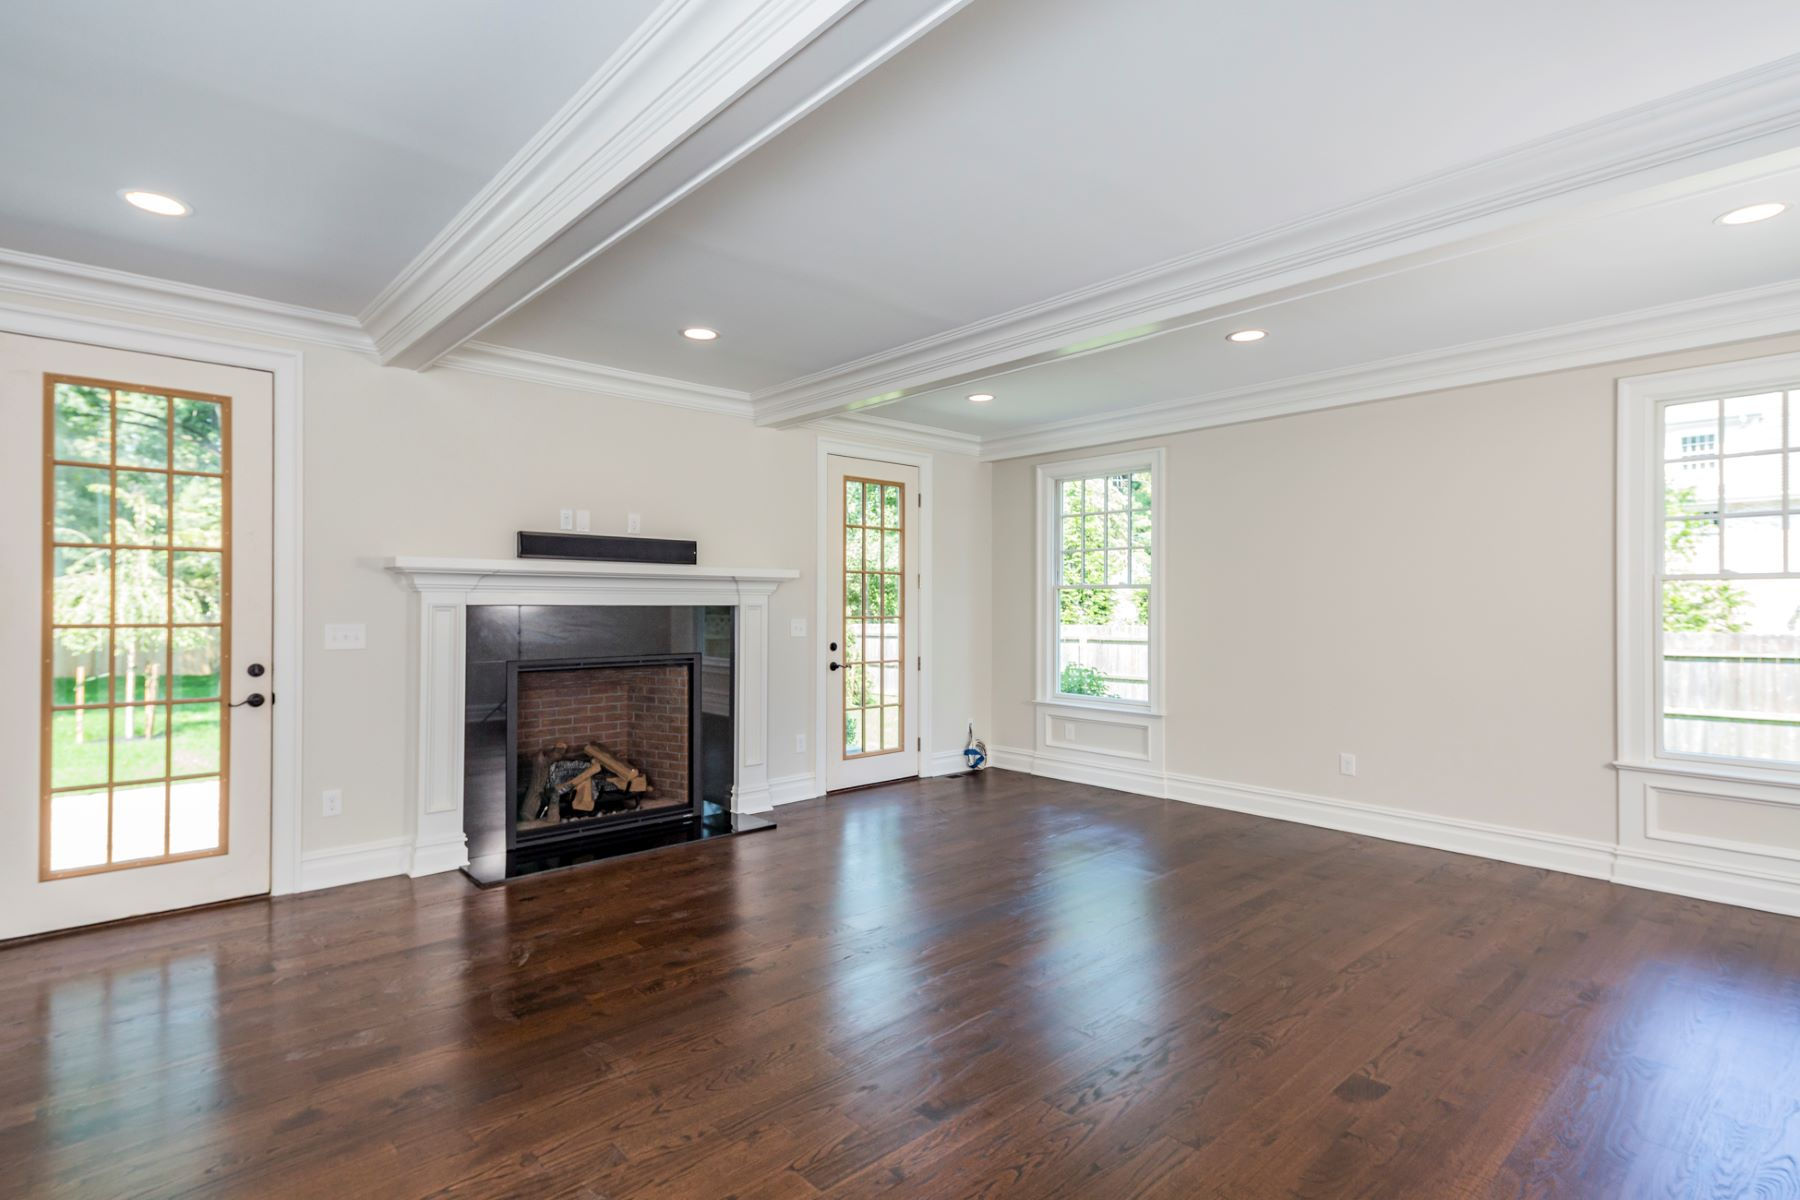 Additional photo for property listing at New Construction by RB Homes 259 Edgerstoune Road, Princeton, New Jersey 08540 Stati Uniti